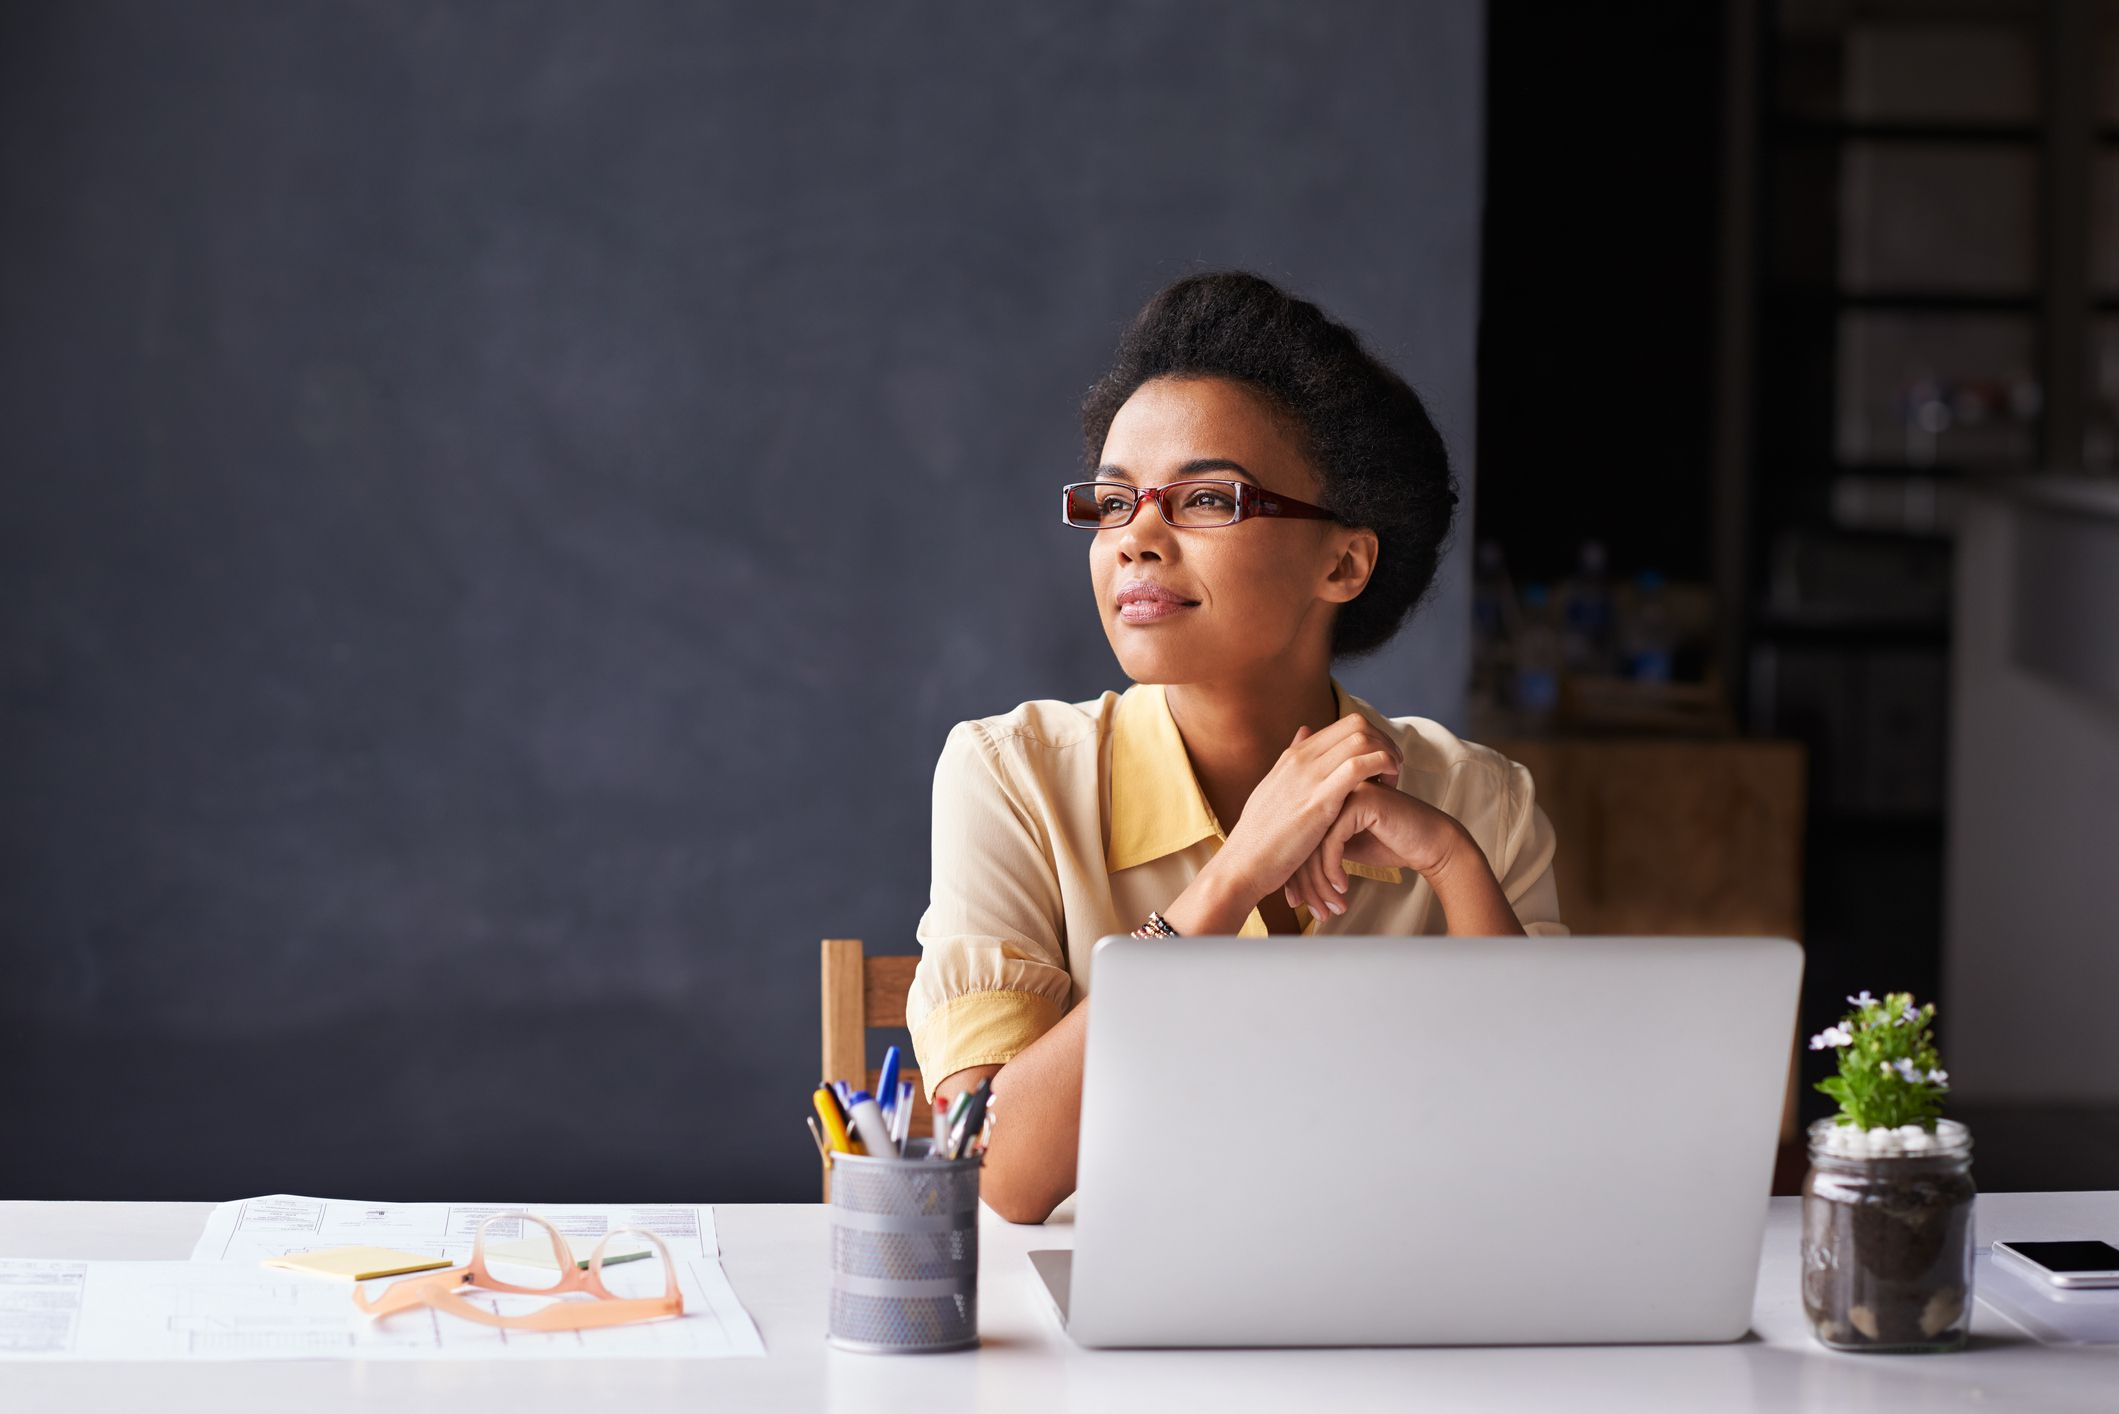 Woman looking out window in office